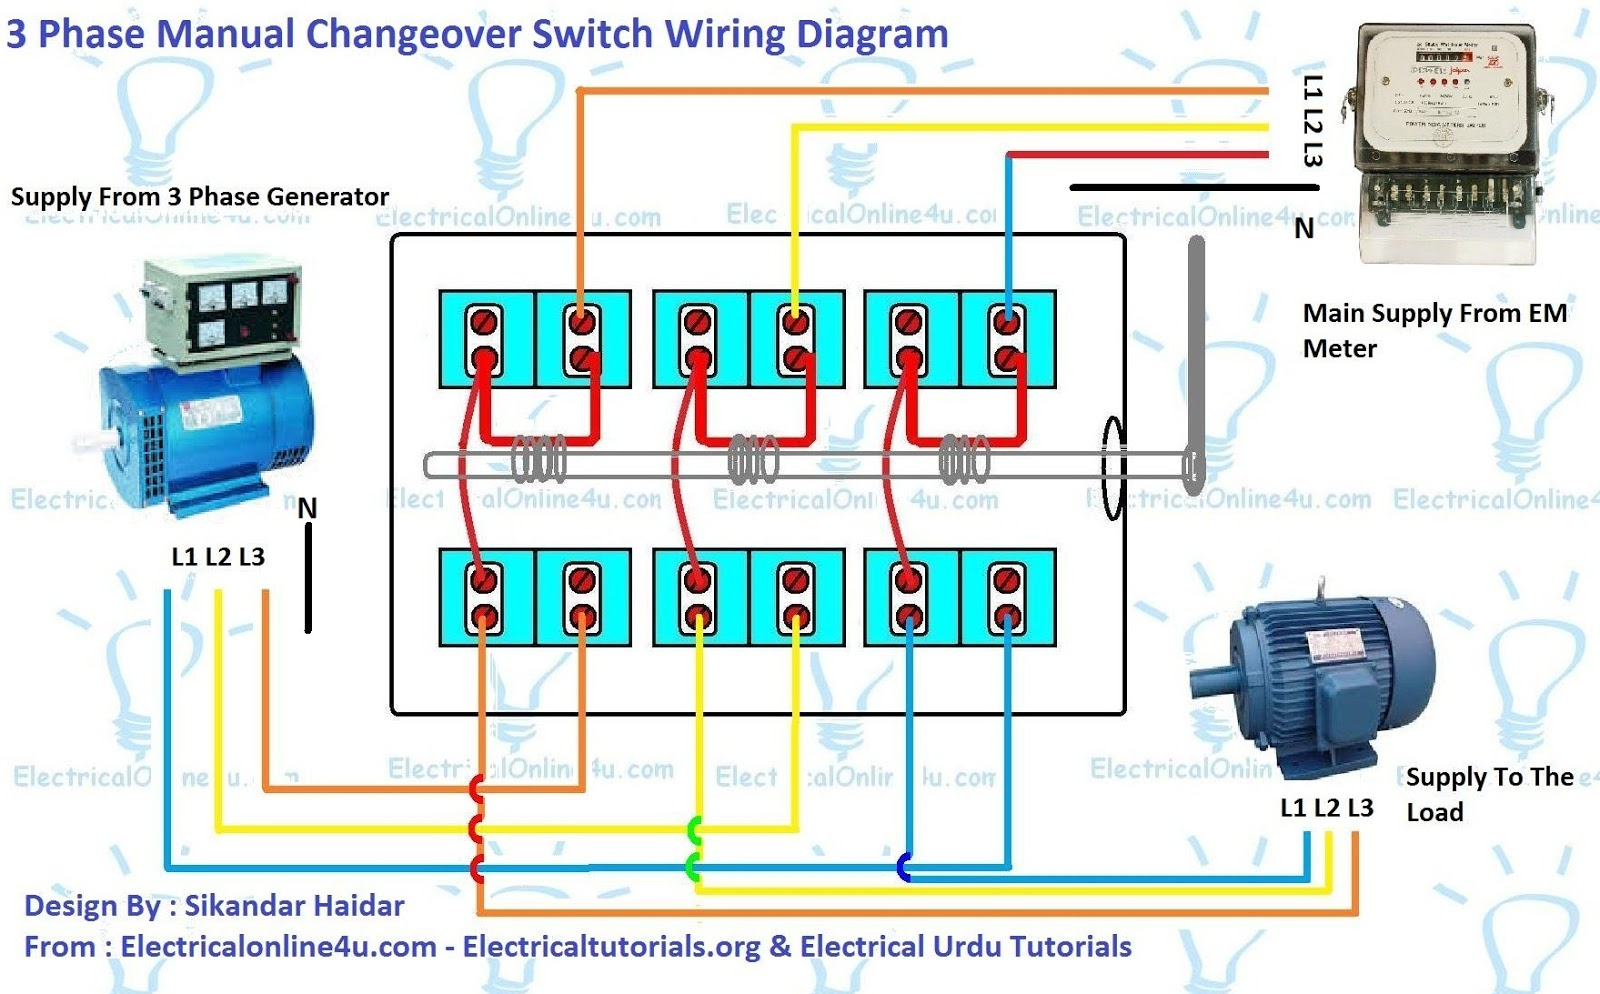 6 wire 3 phase connection diagram 3 phase wire diagram italian electrical online 4u #12